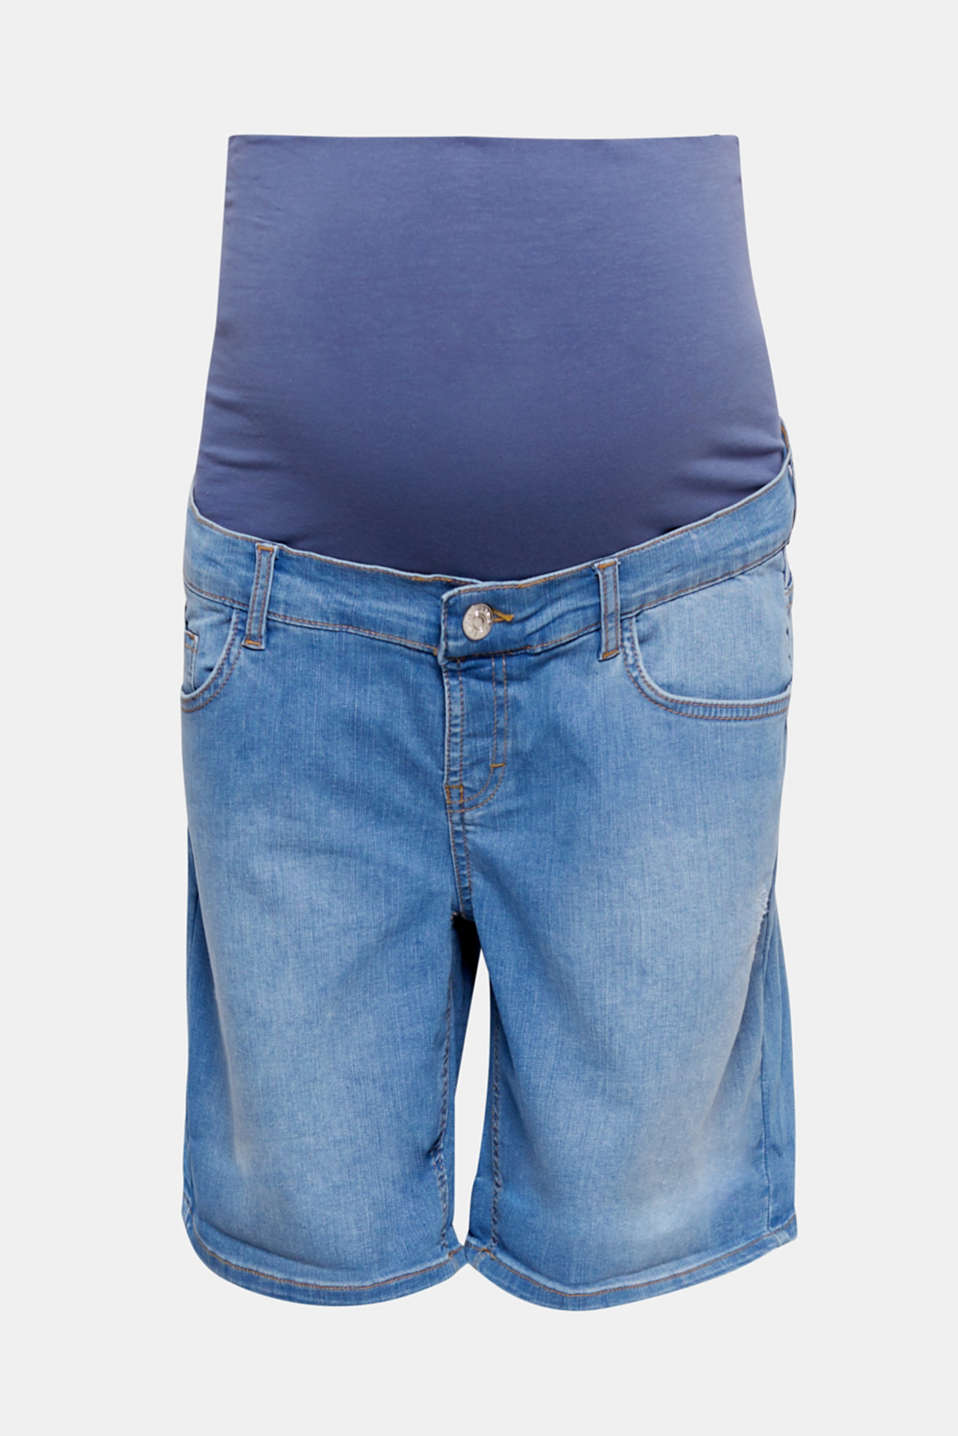 These short boyfriend jeans are casual and comfortable with stylish bleached effects and an over-bump waistband!